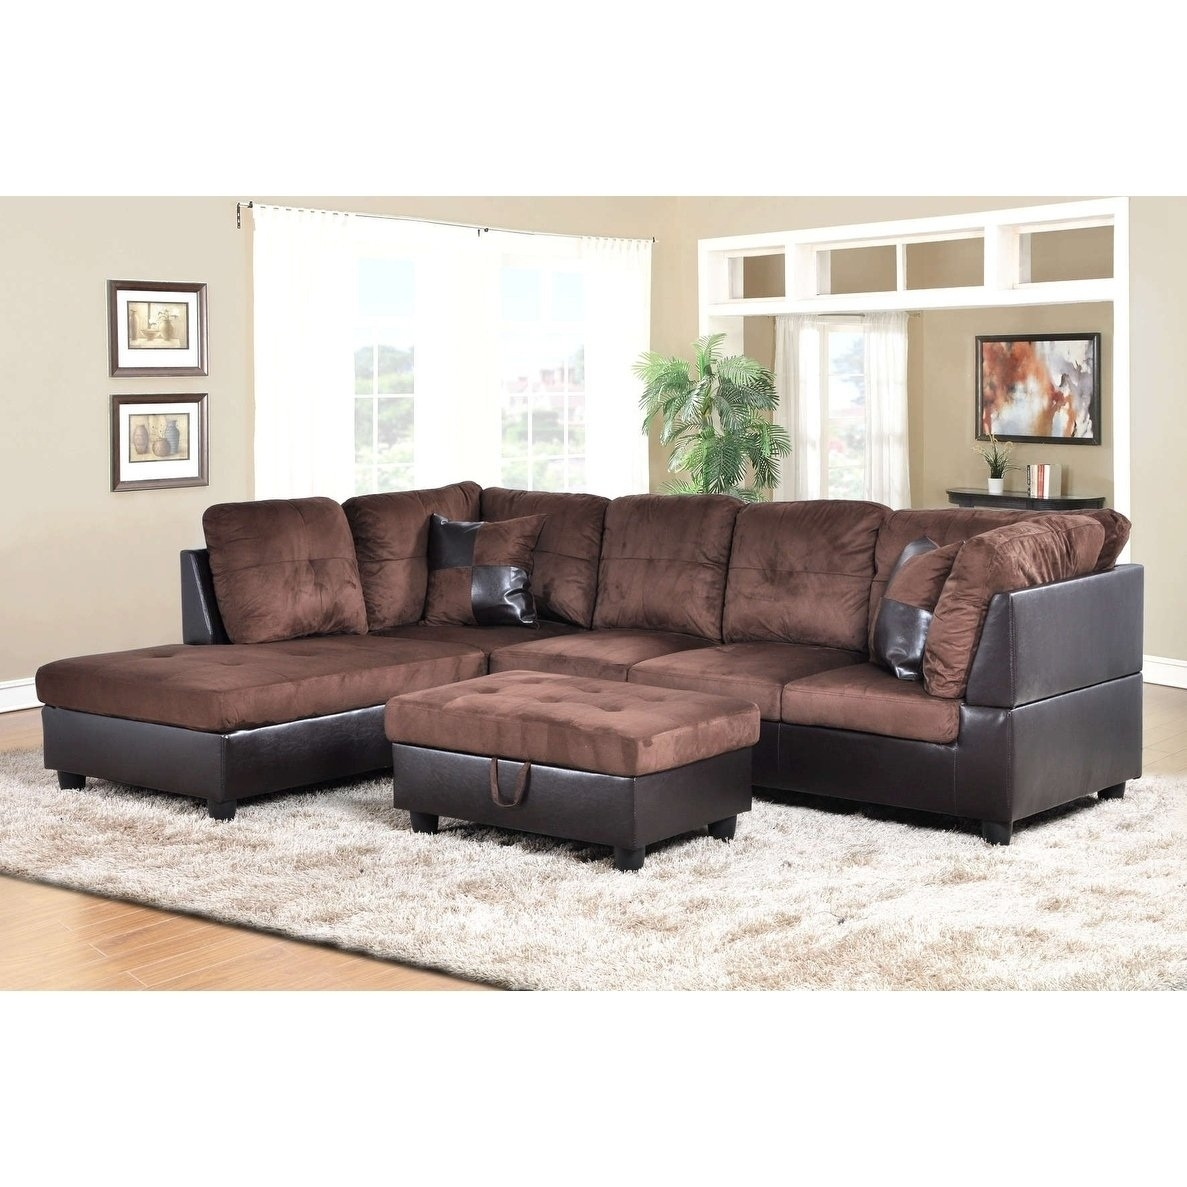 Shop Golden Coast Furniture 3-Piece Microfiber Leather Sofa with regard to Karen 3 Piece Sectionals (Image 22 of 30)